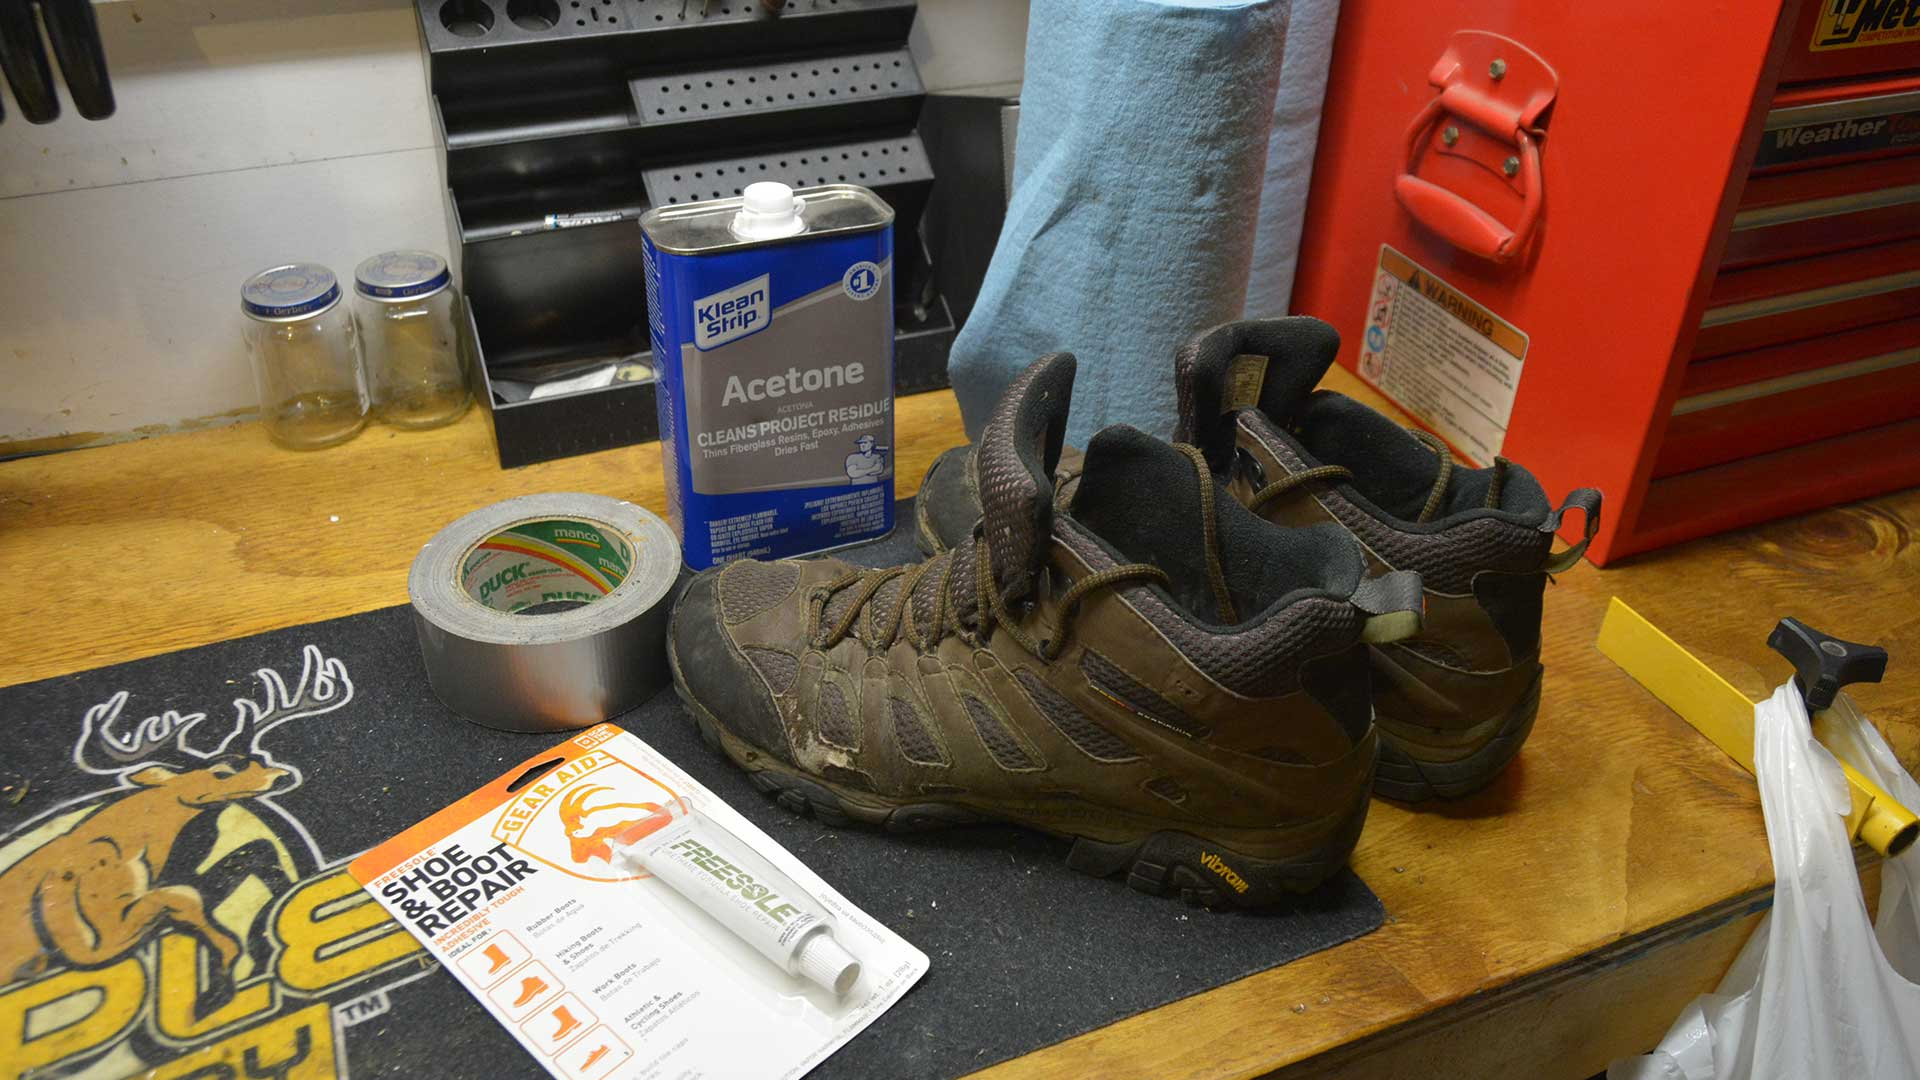 Pictured here is everything I needed to get the job done. While the instructions called for alcohol to clean the boot before repair I used Acetone because it's all I had handy in the garage. For what it's worth it seems to have worked just fine.